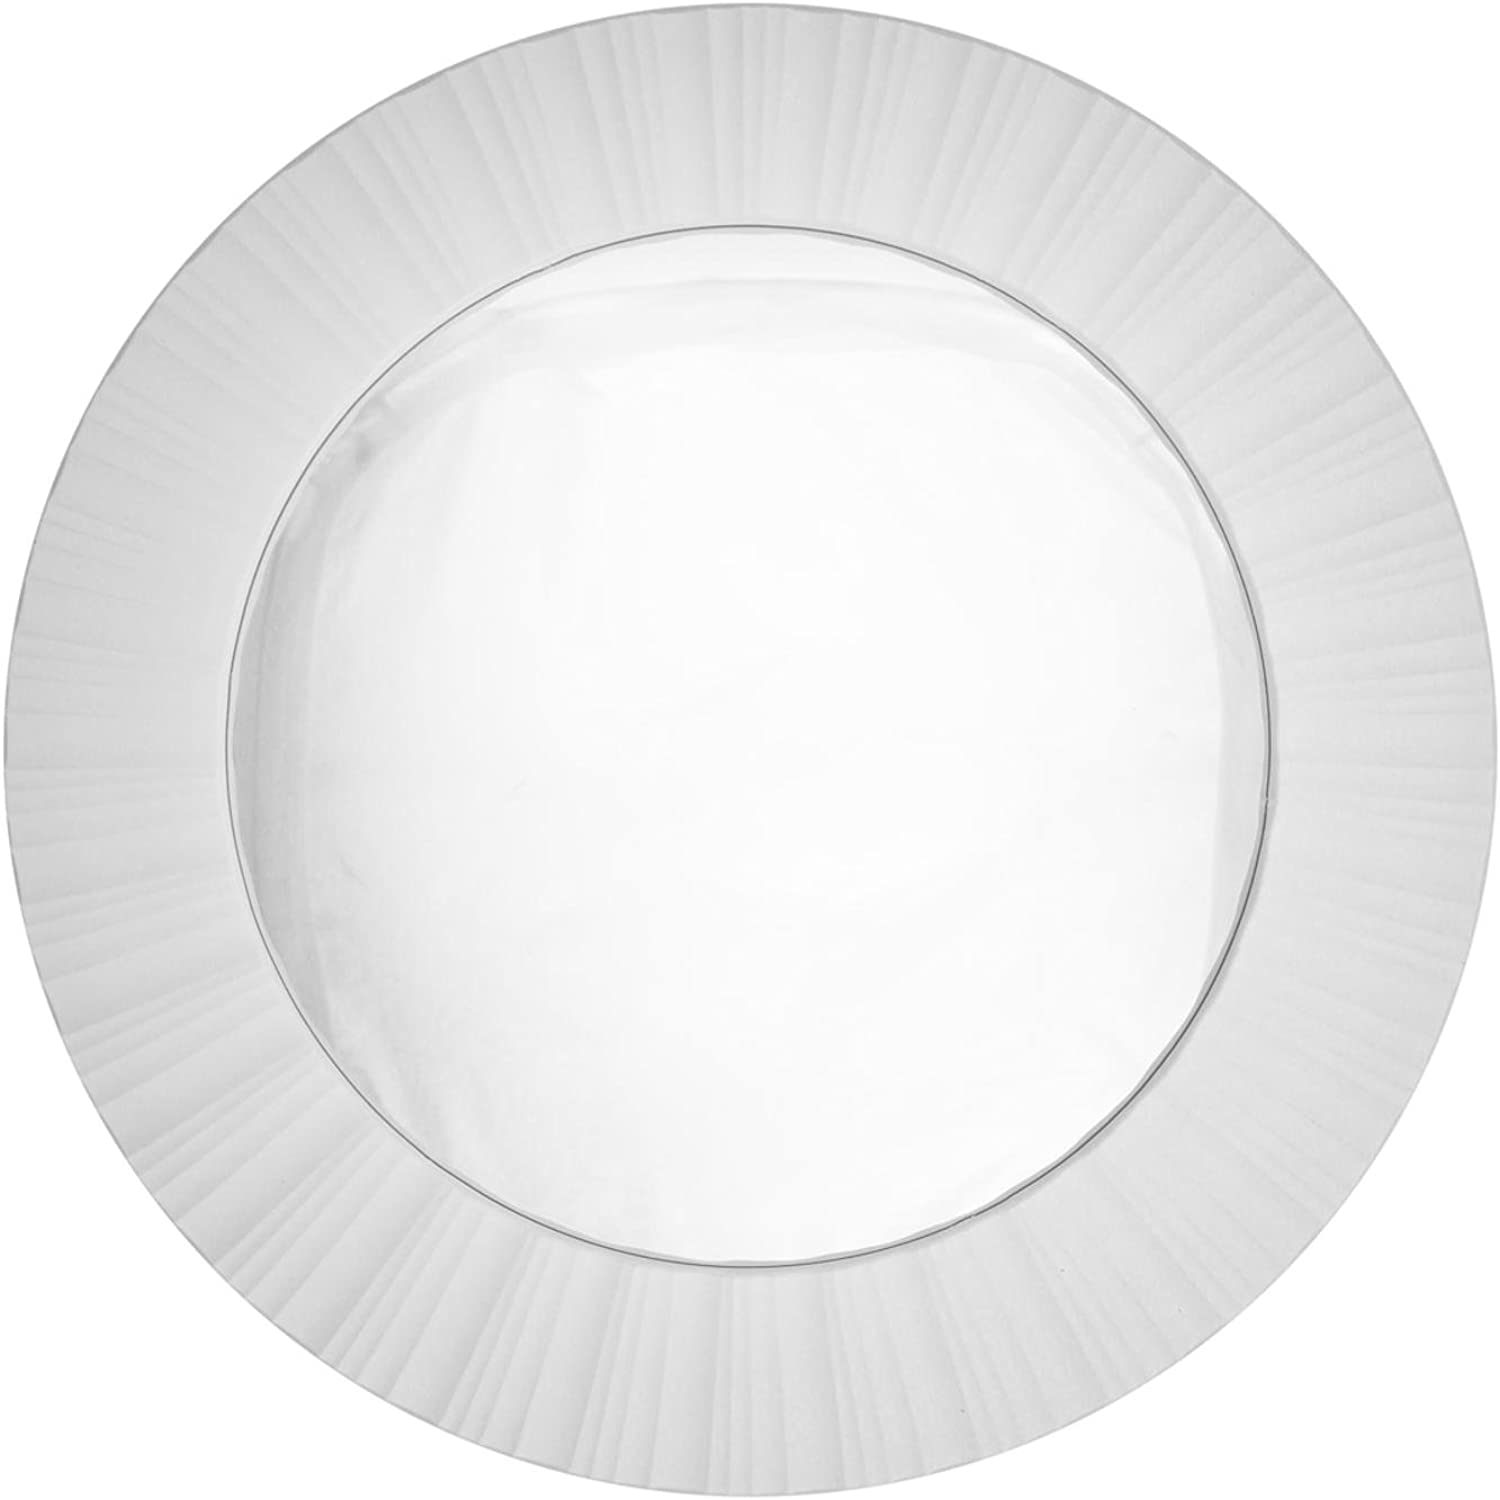 Northlight Simply Elegant Fluted Frame Decorative Round Wall Mirror, 20 , White